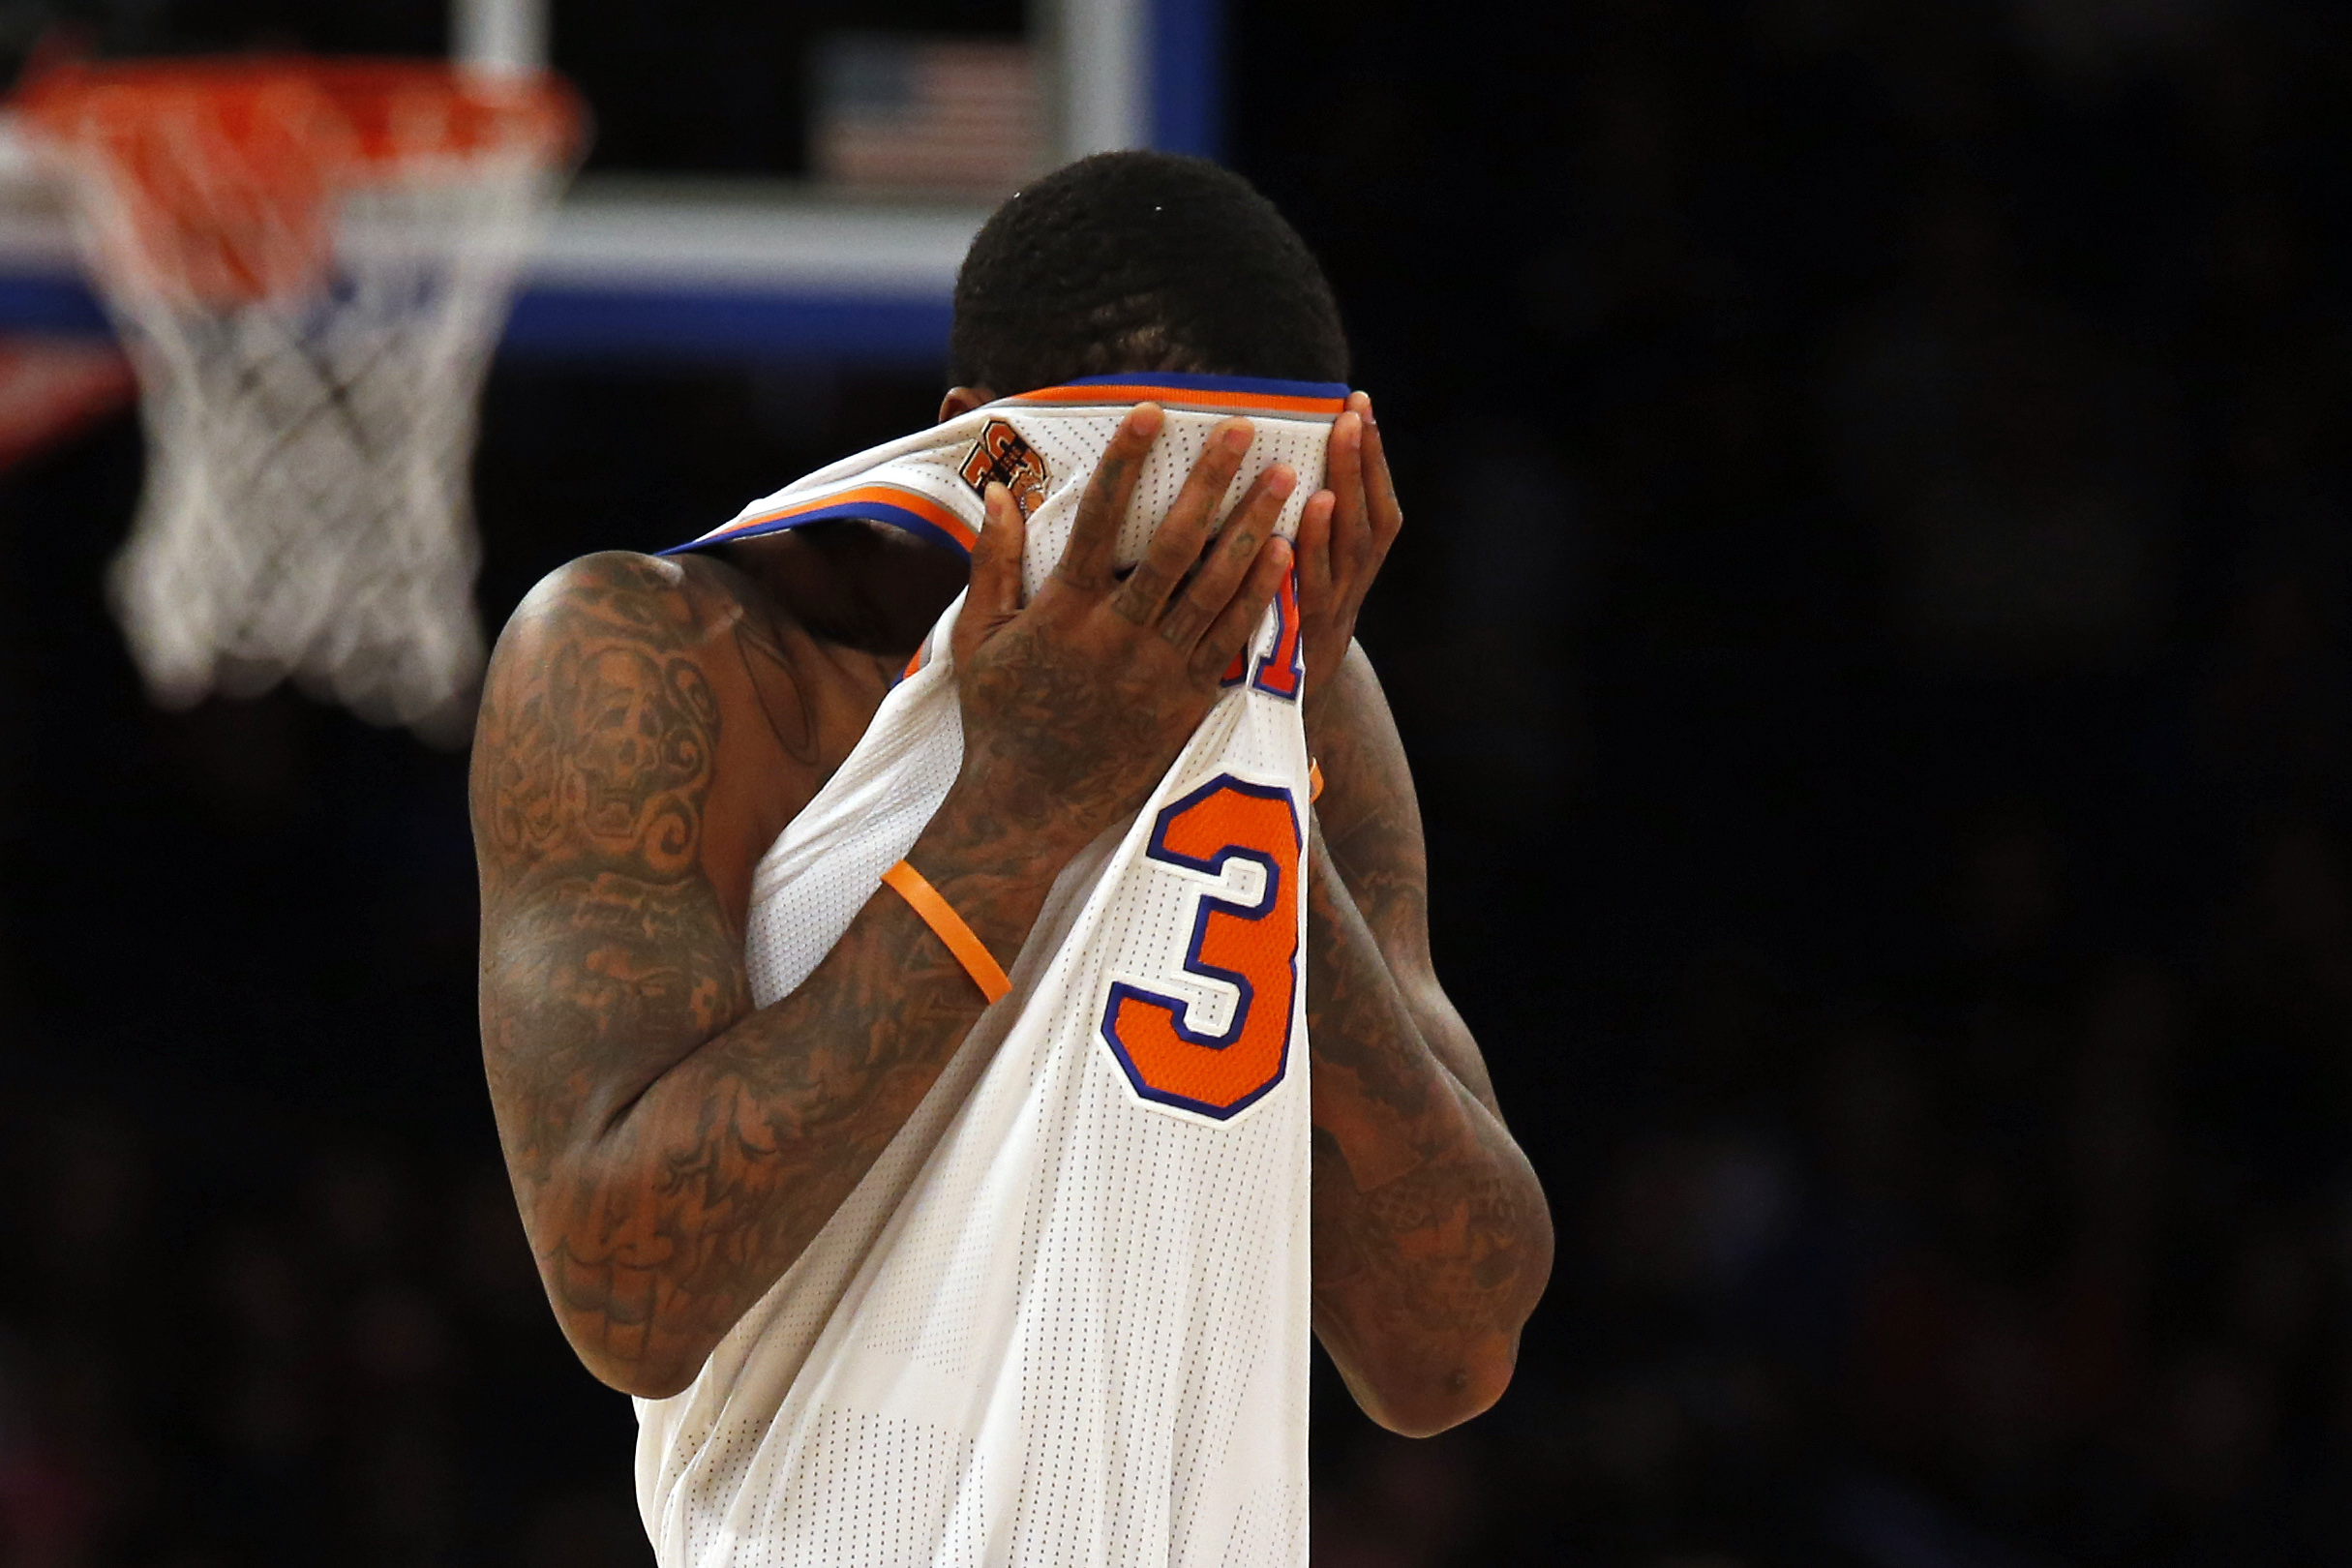 New York Knicks PG Brandon Jennings' frustration boils over 1